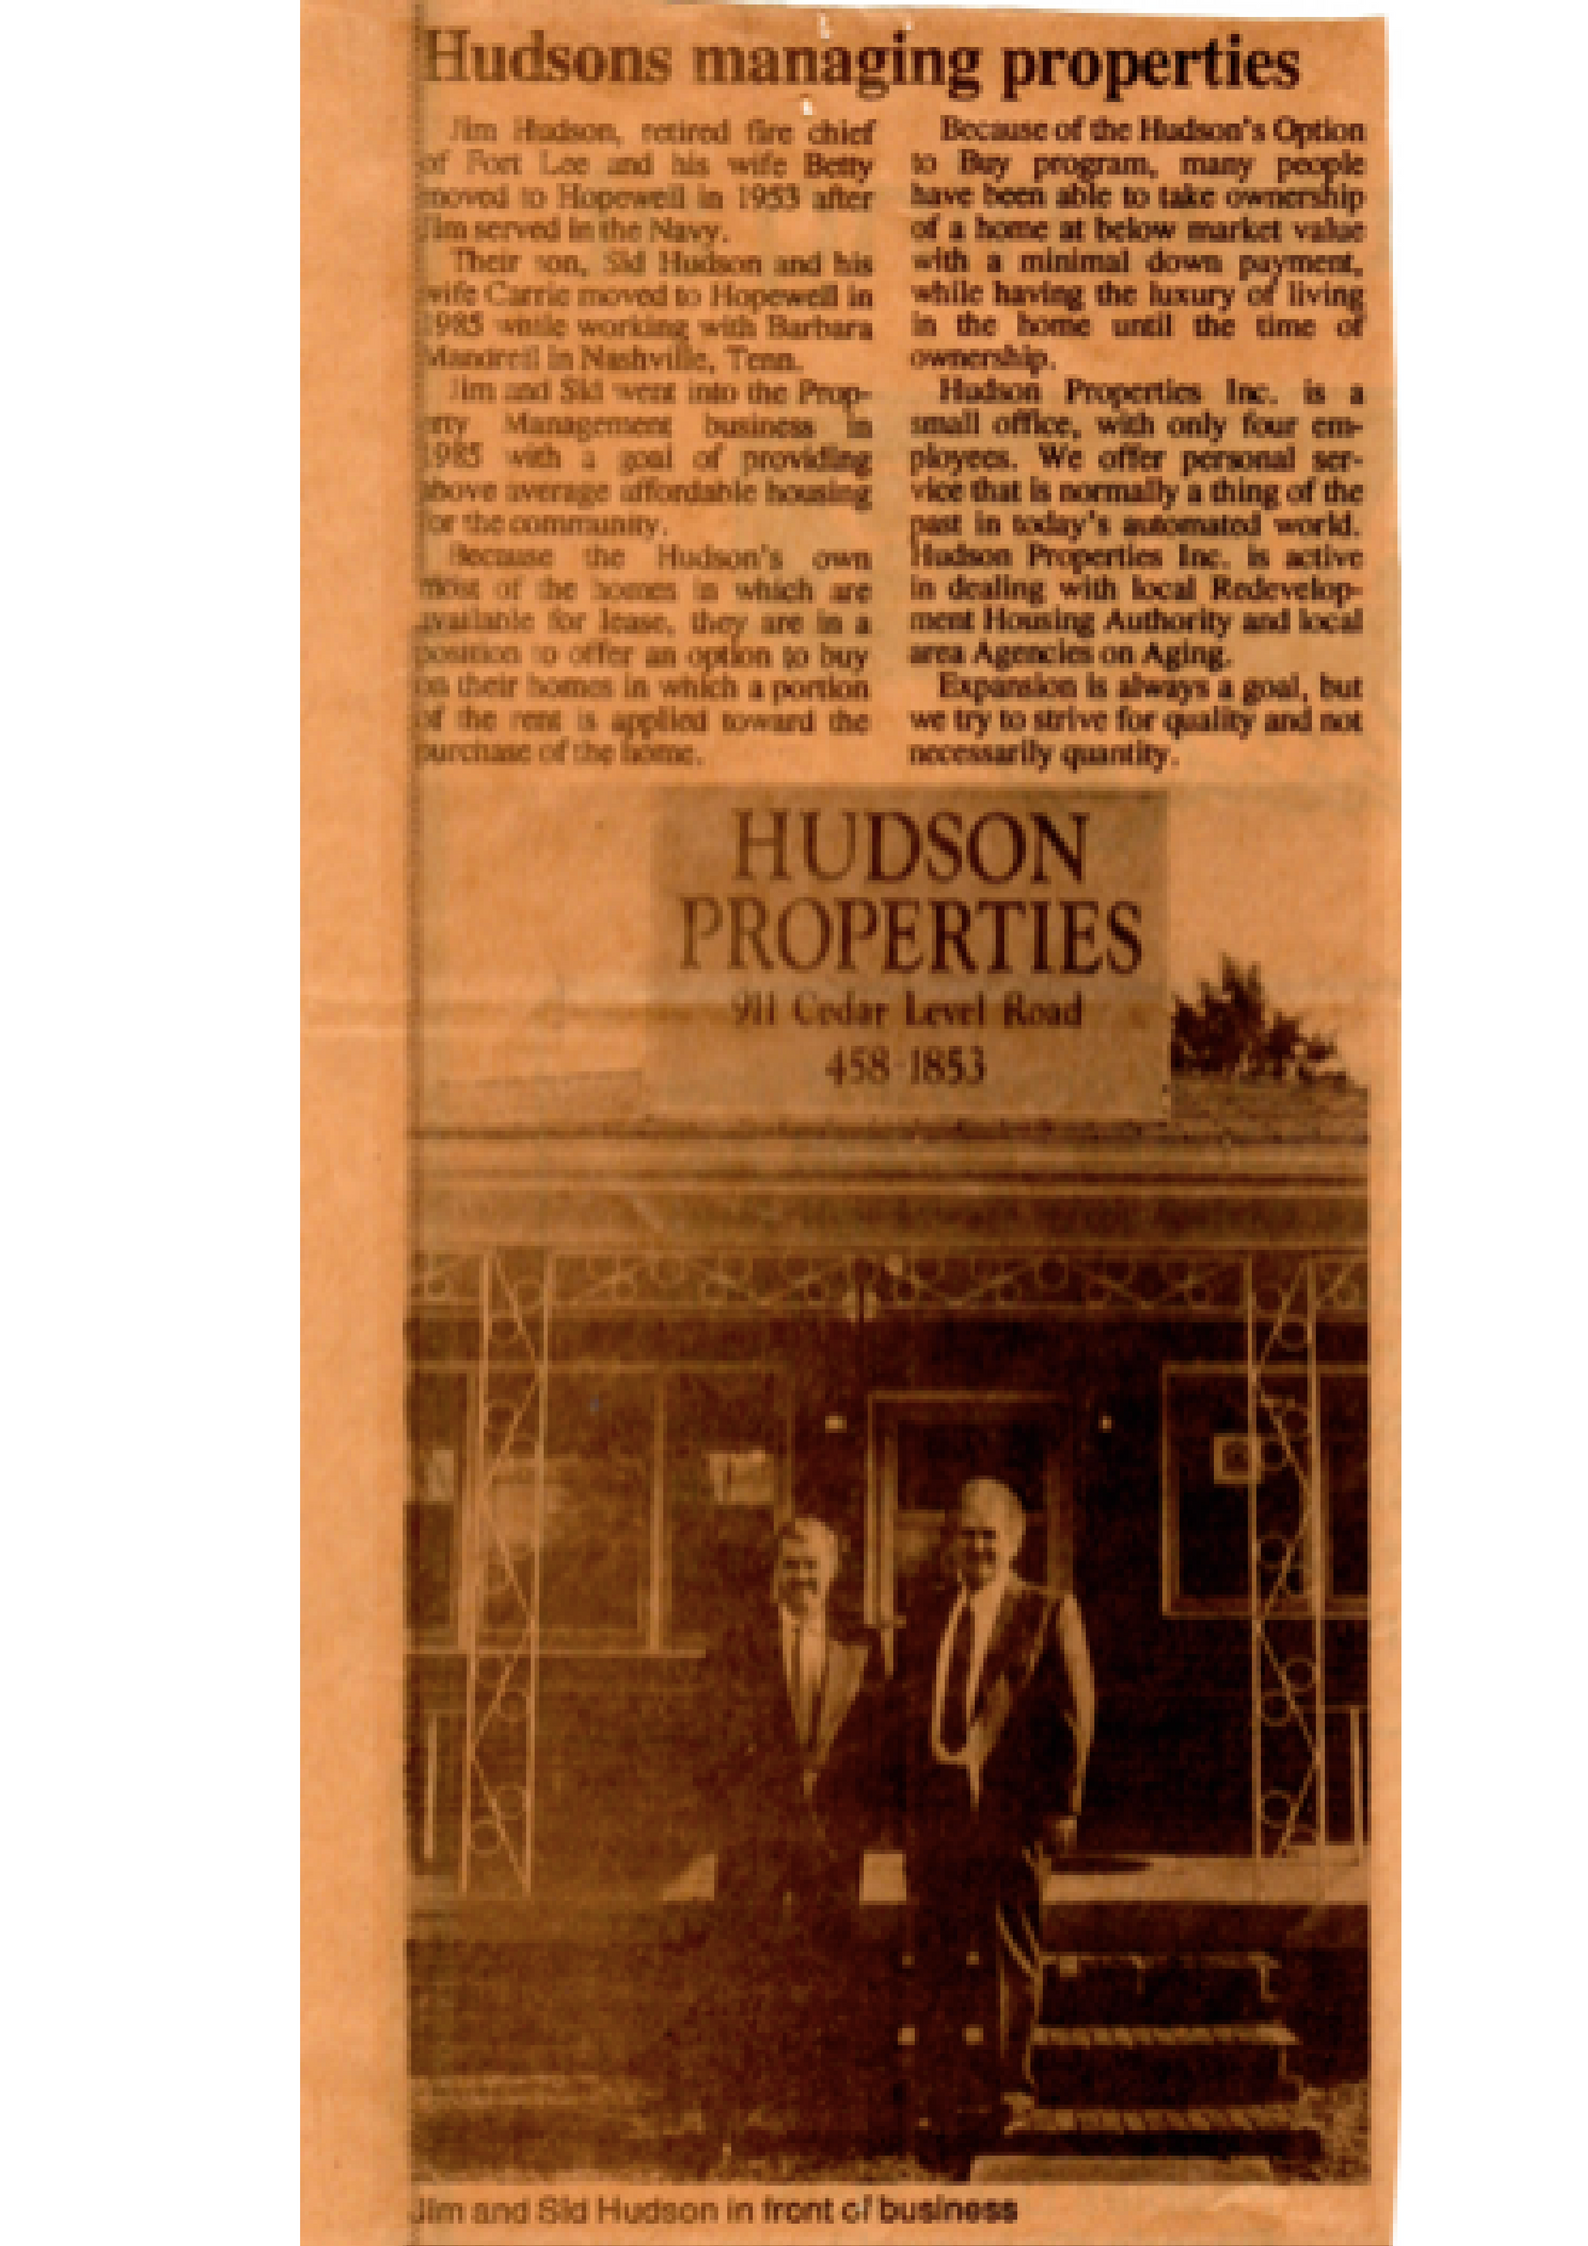 Original Hopewell Times article when Jim and Sid Hudson opened Hudson Properties in 1985.